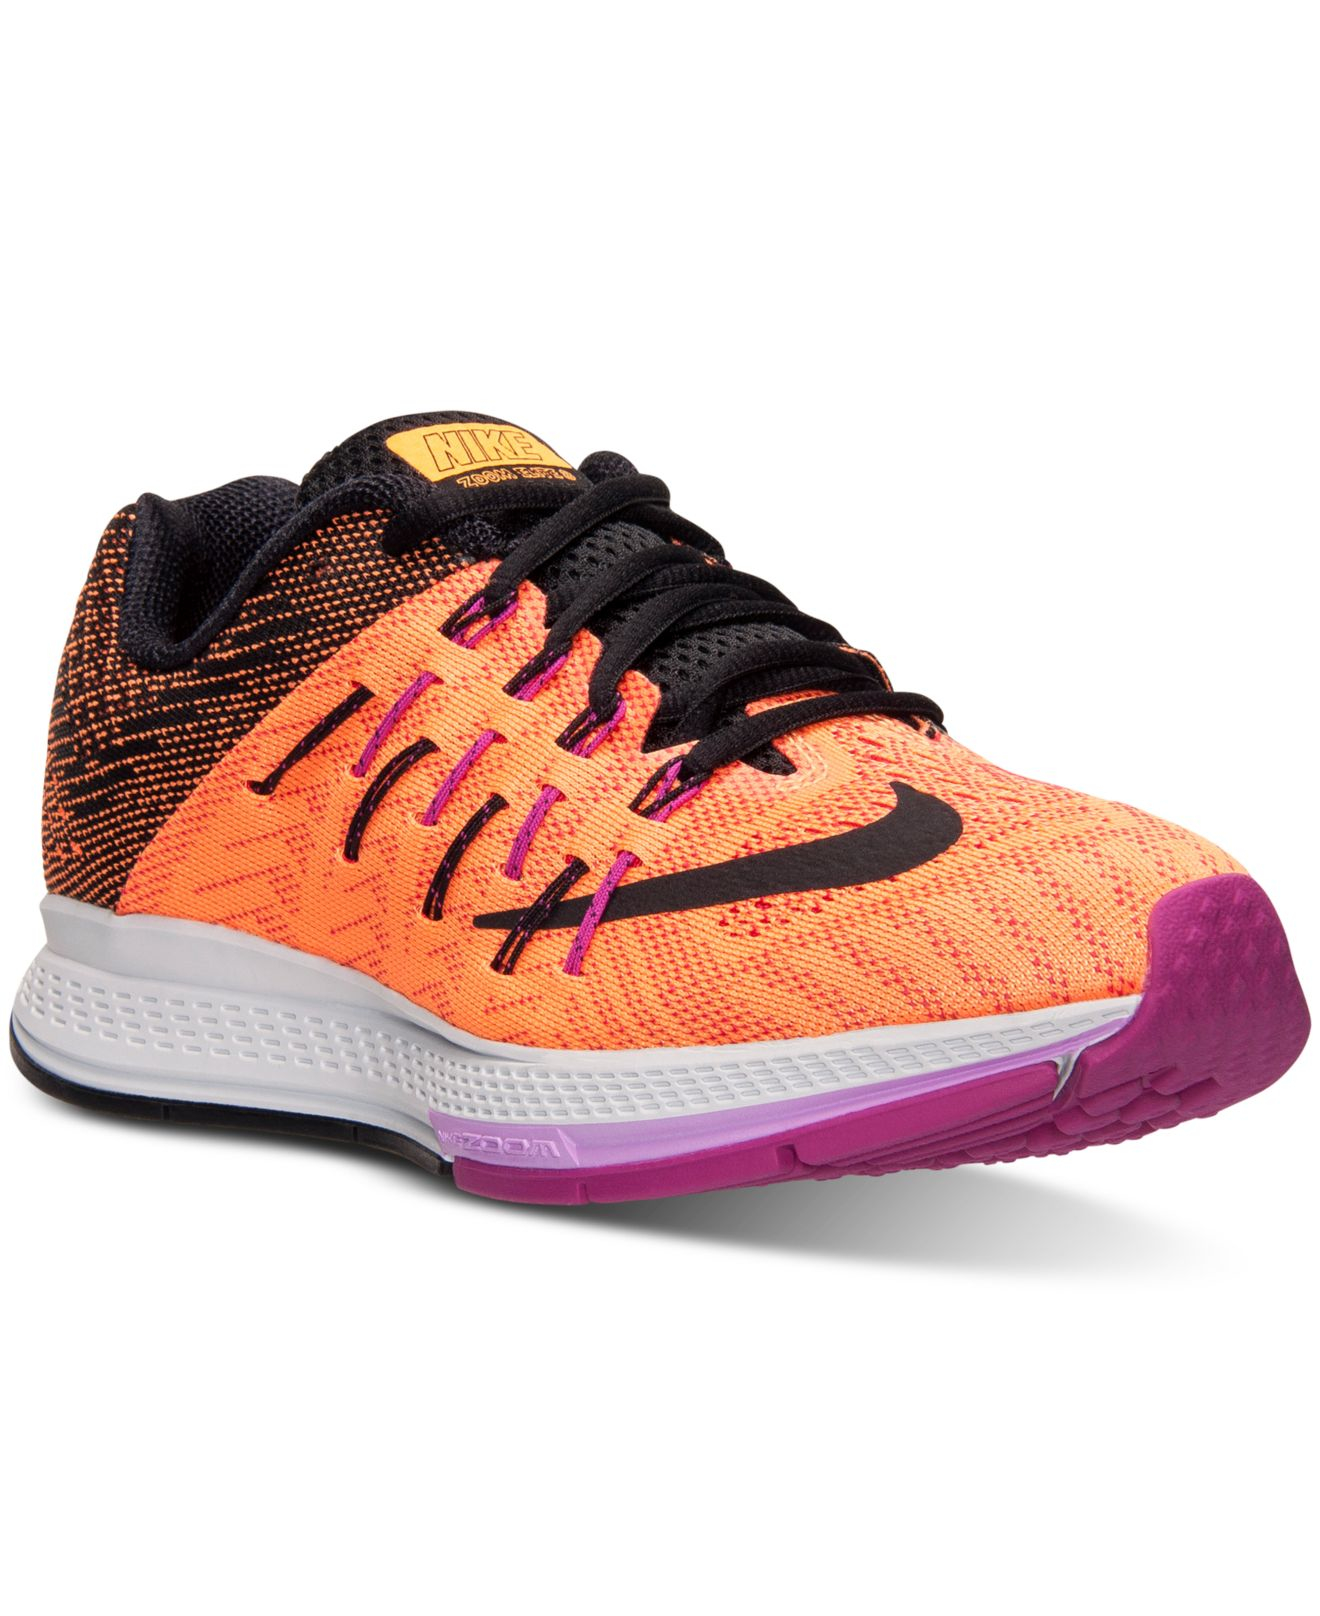 712b51071 Lyst - Nike Women s Air Zoom Elite 8 Running Sneakers From Finish ...